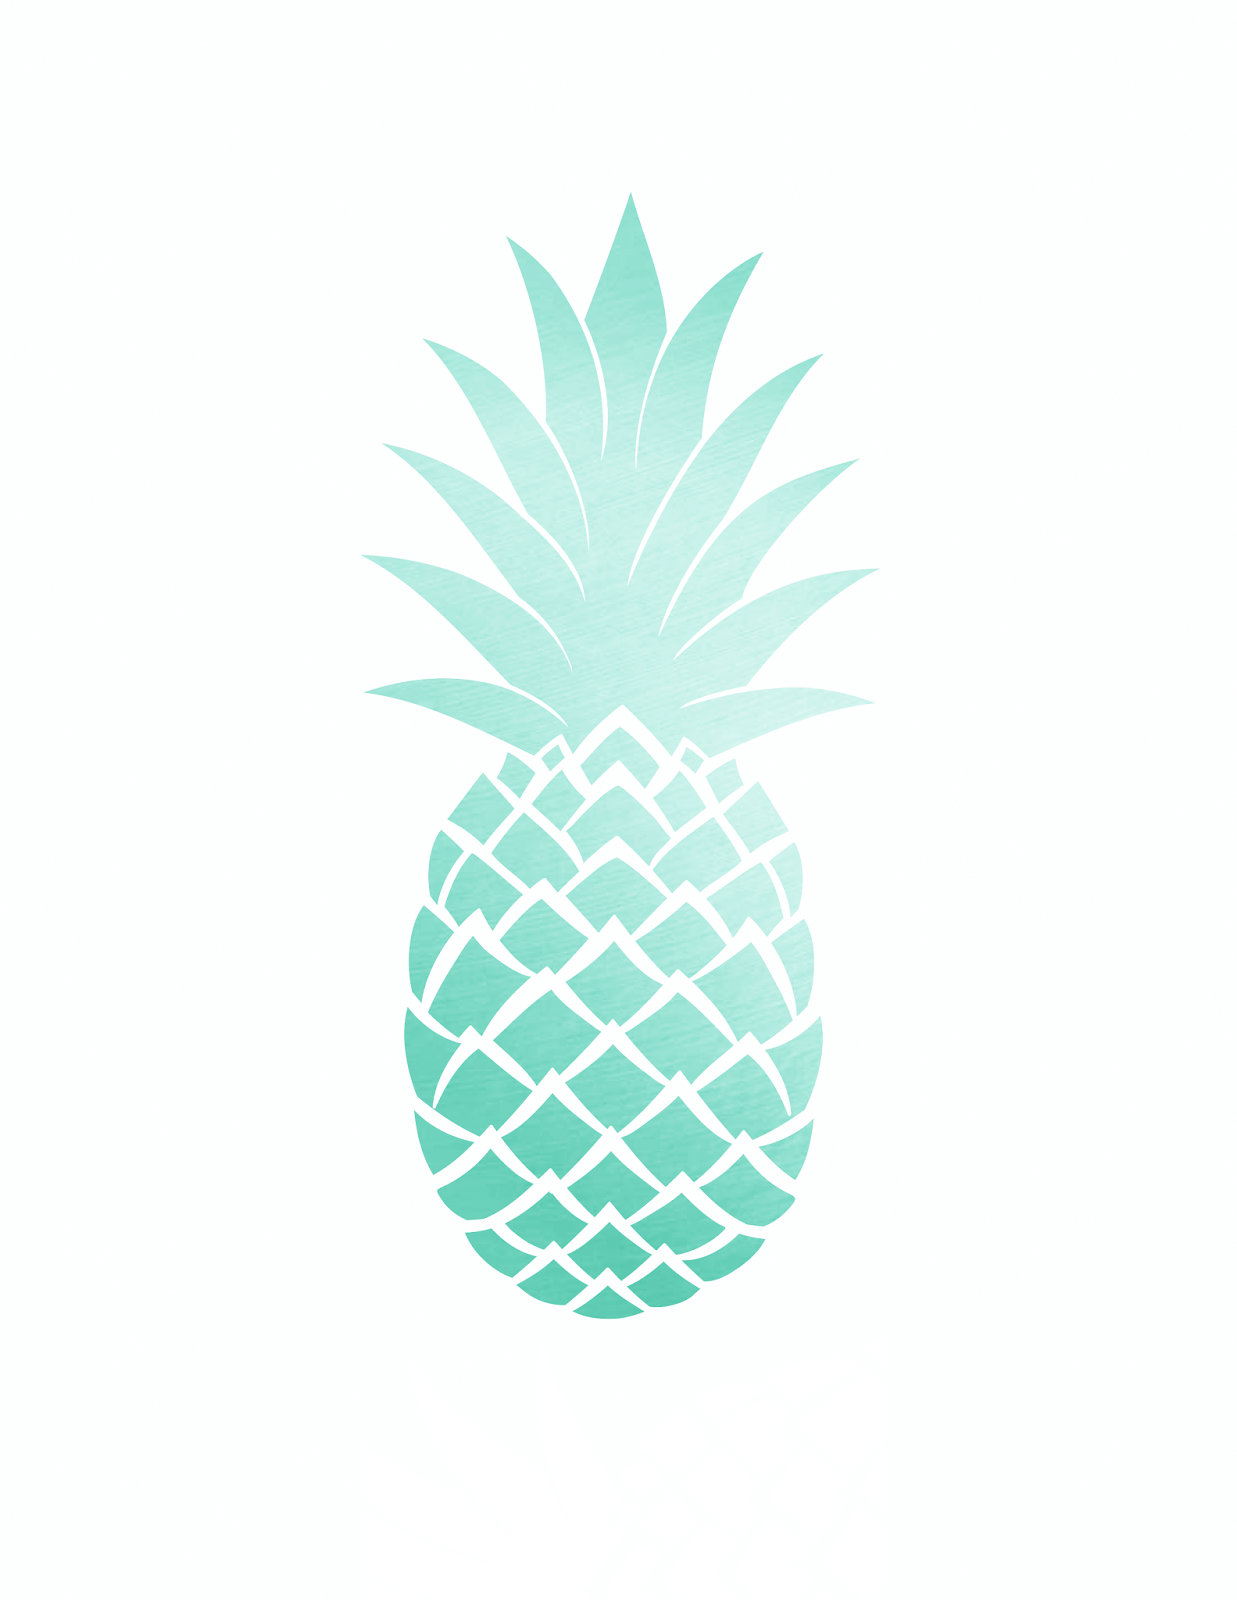 photograph relating to Pineapple Printable identify free of charge pineapple printables include some pleasurable in the direction of your dwelling decor!